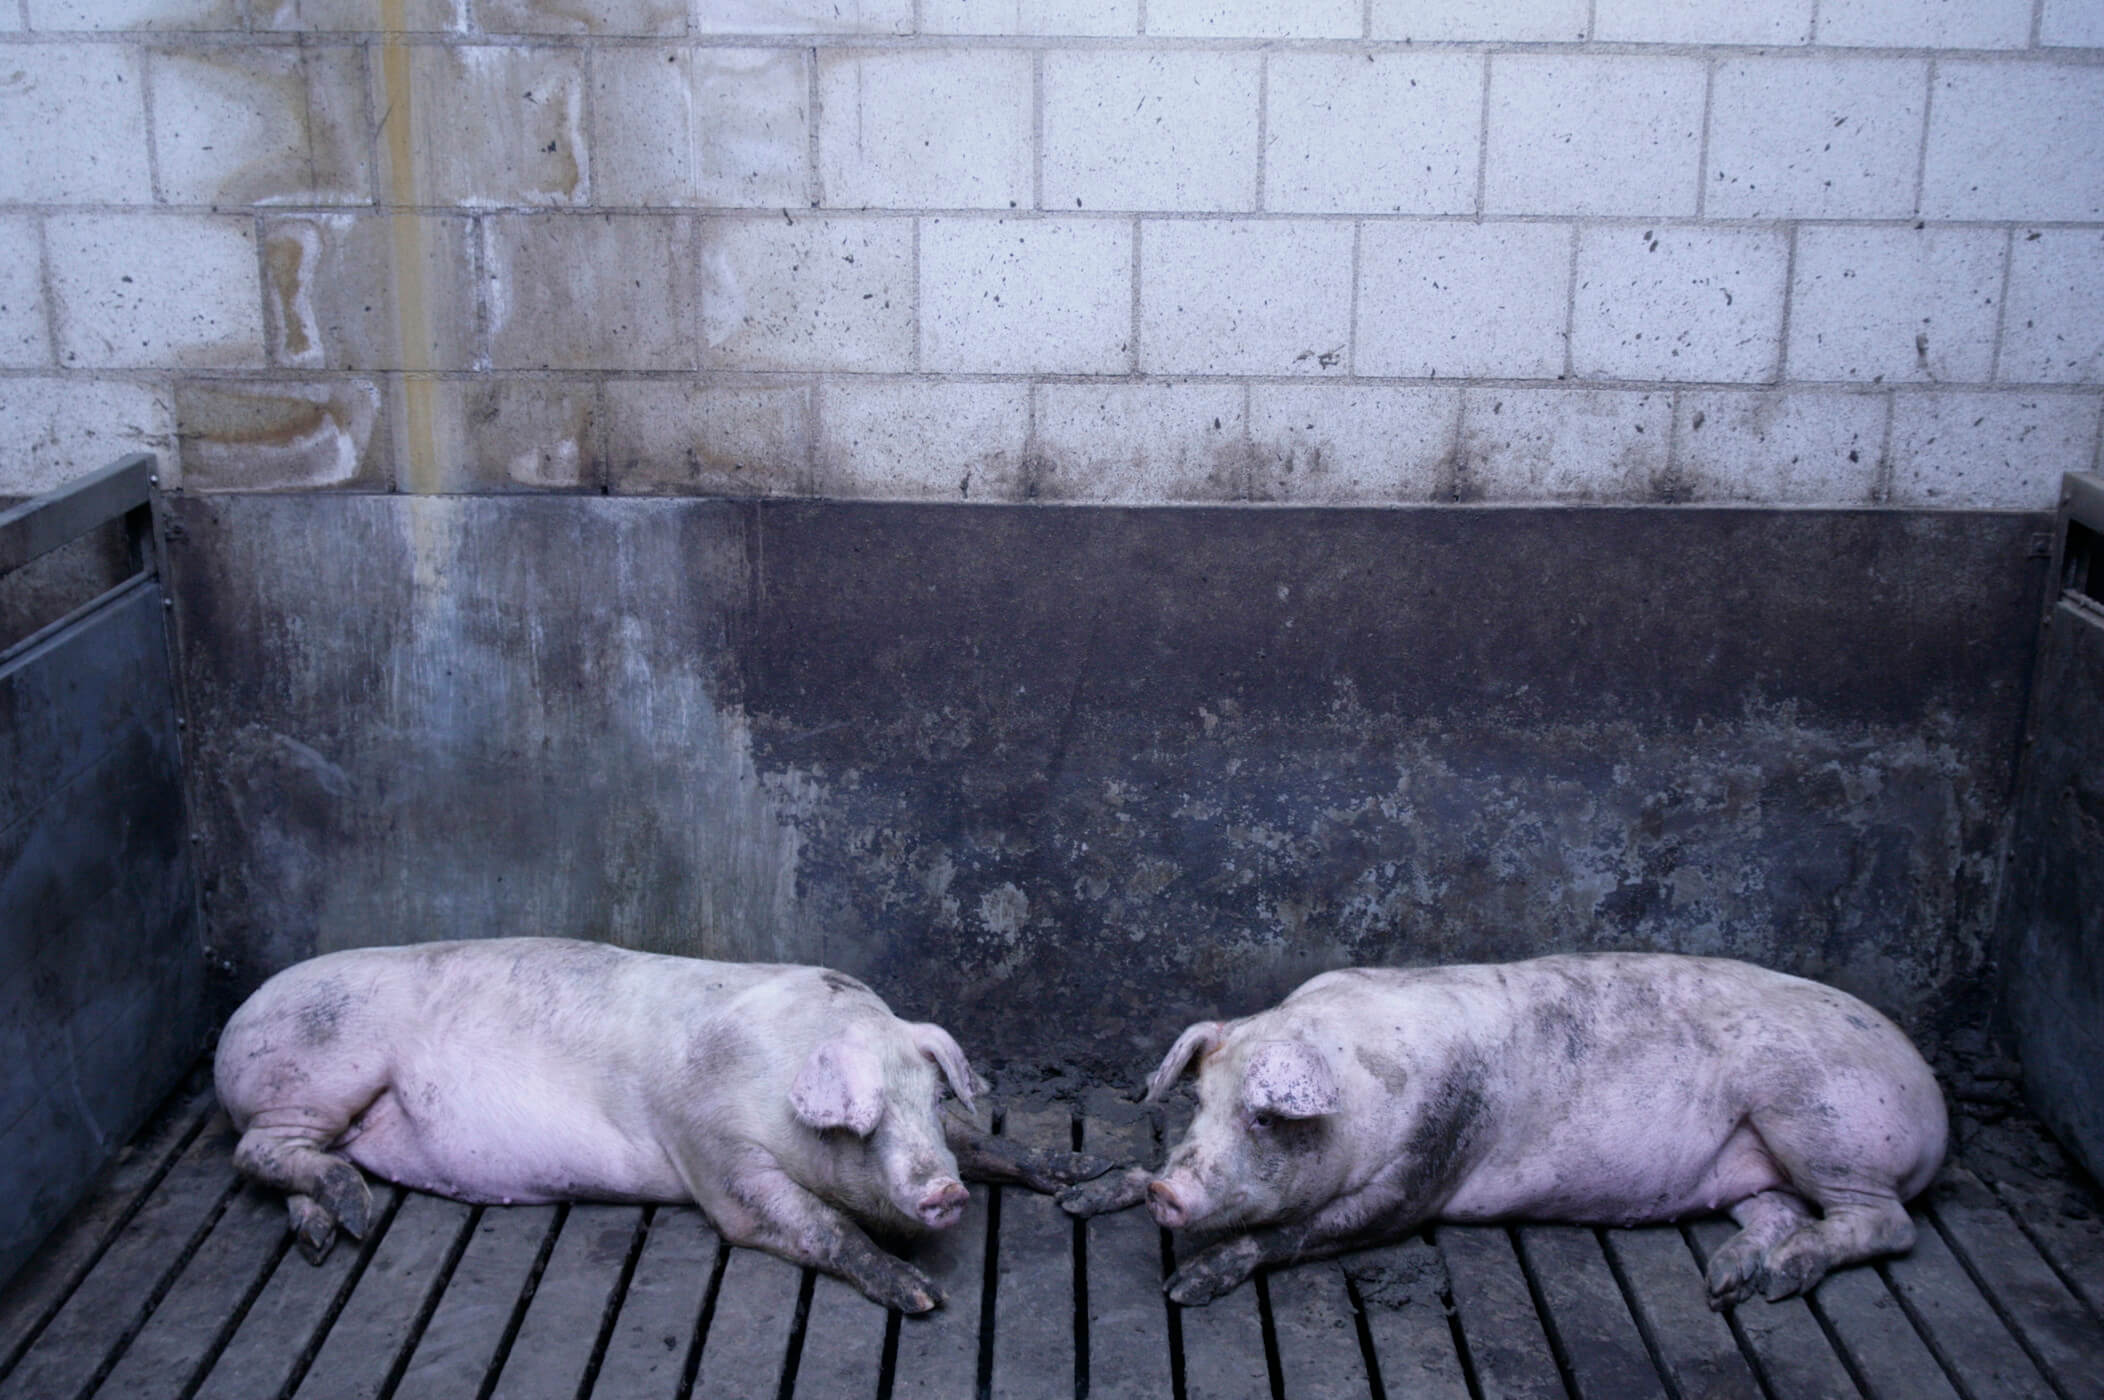 Pigs indoors on slatted floor